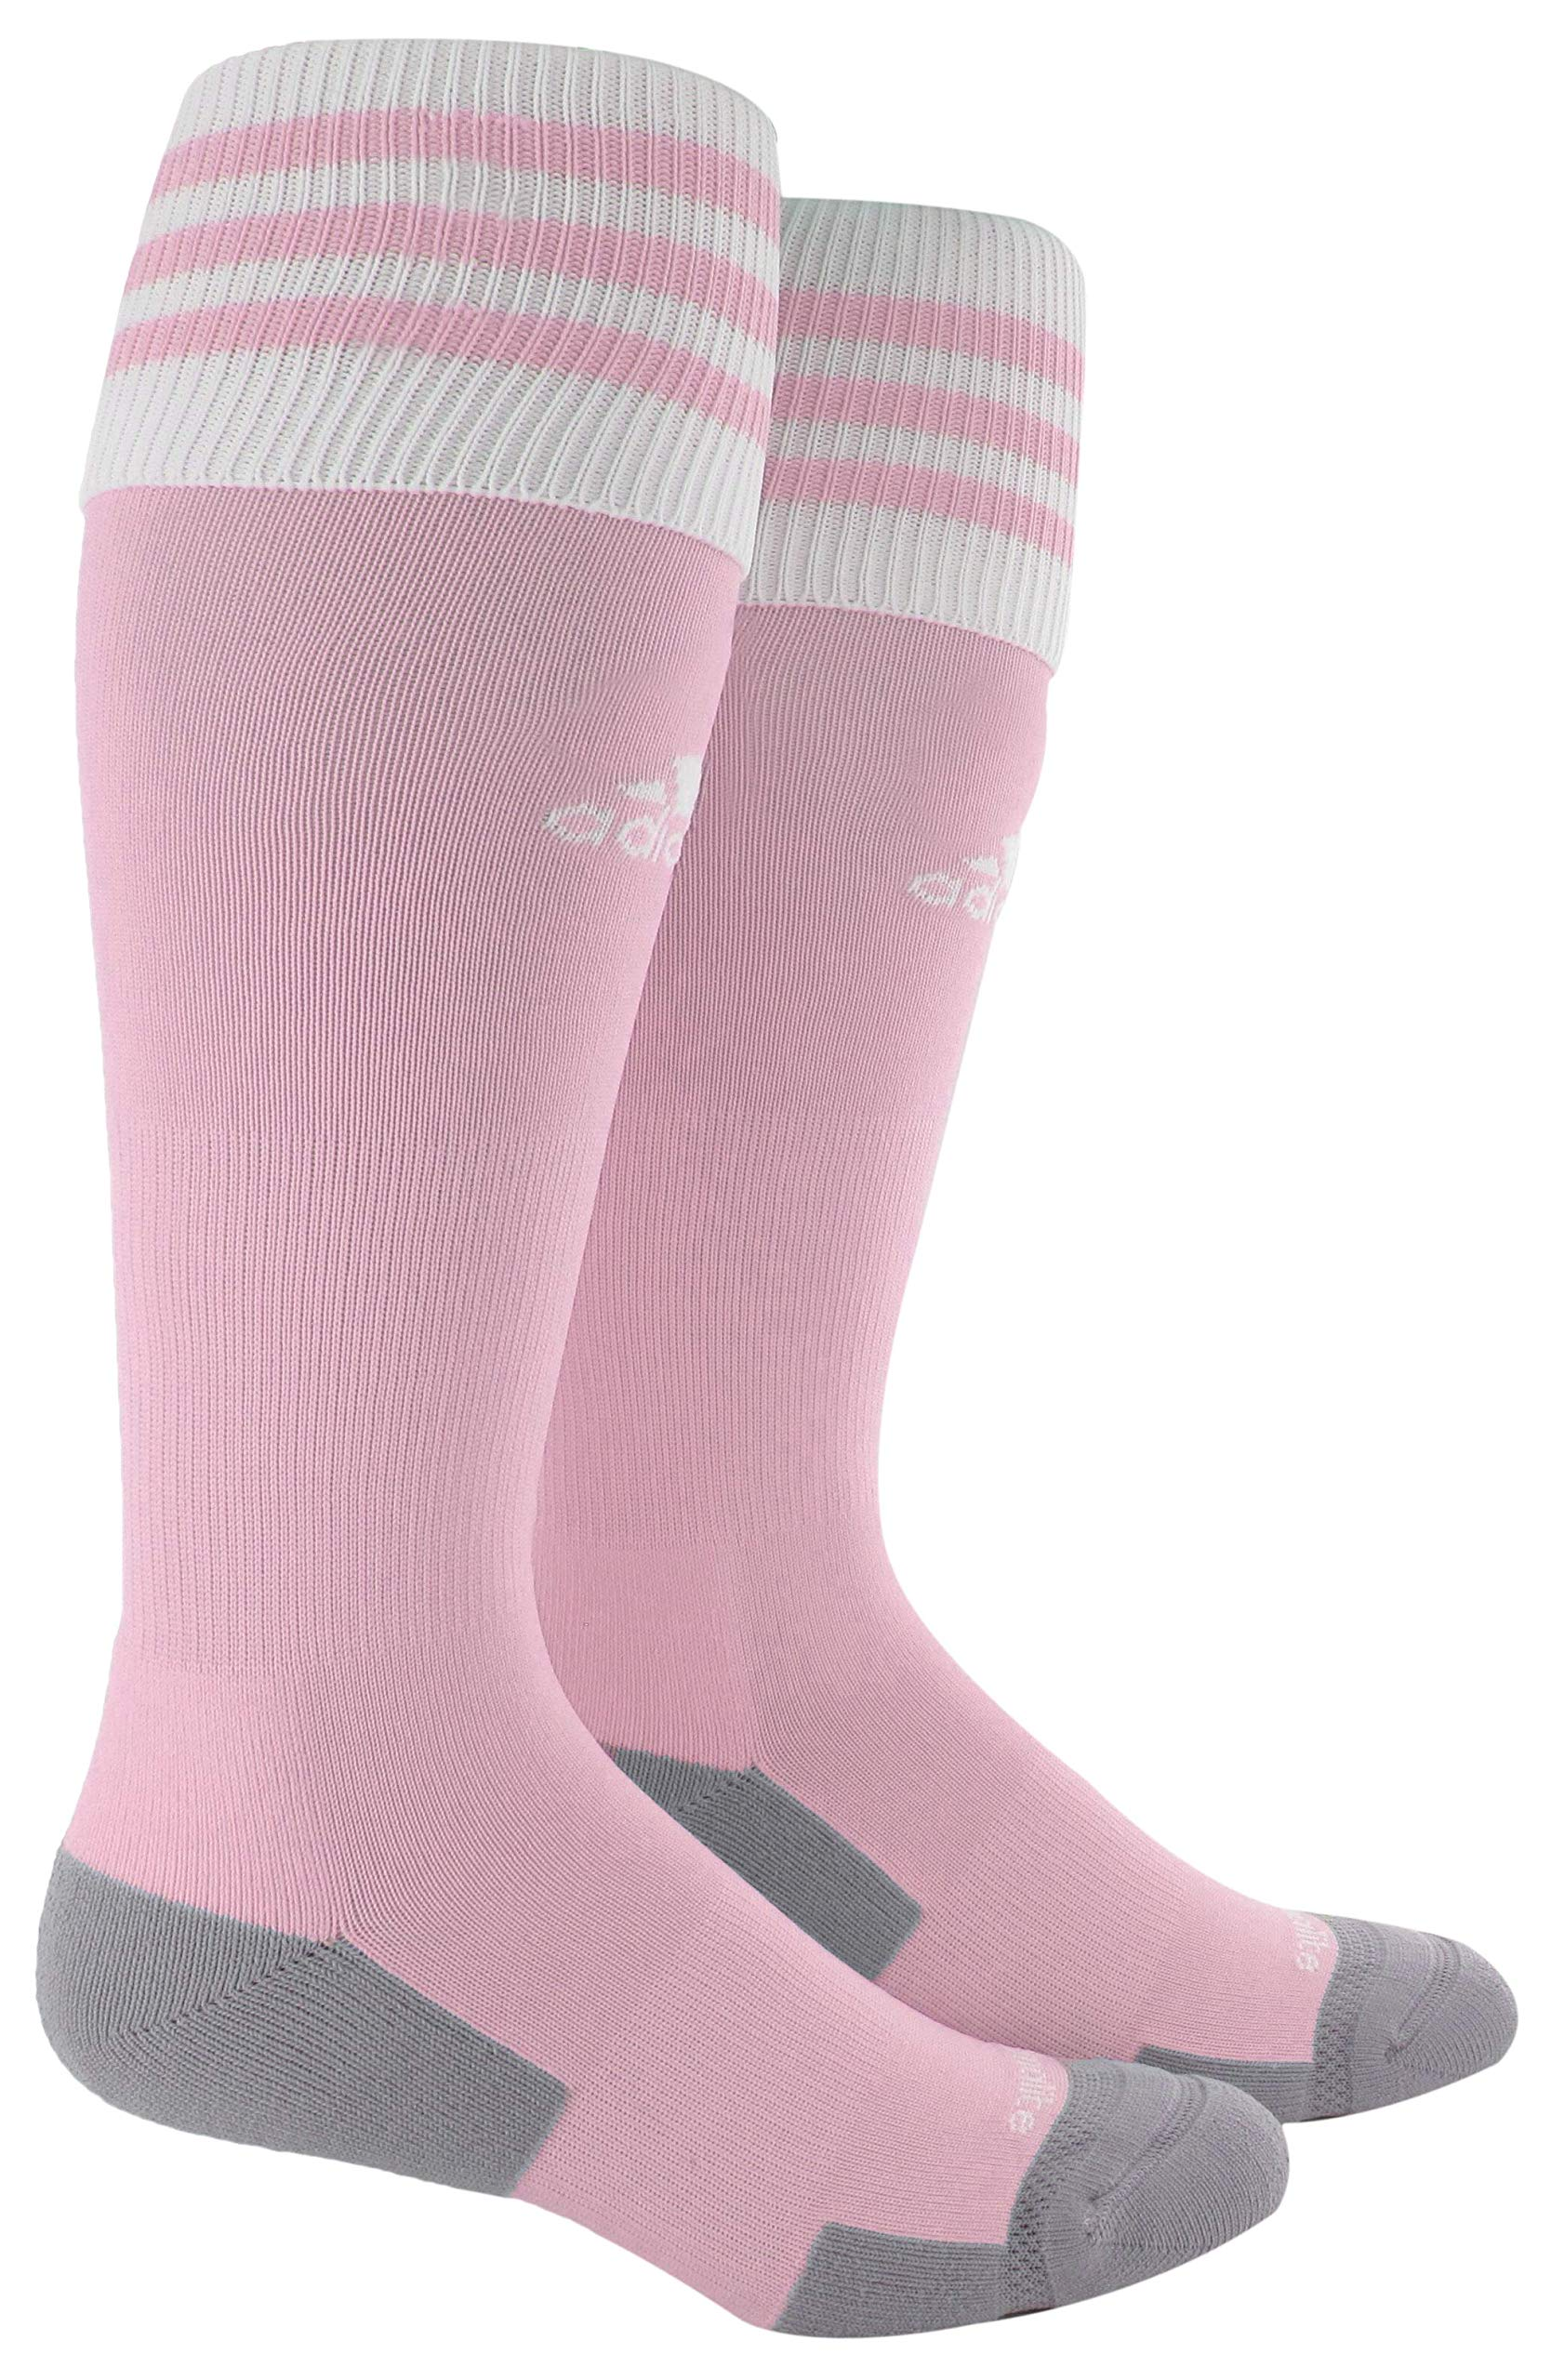 adidas Unisex Copa Zone Cushion II Soccer Sock (1-Pair), Diva/White, 5-8.5 by adidas